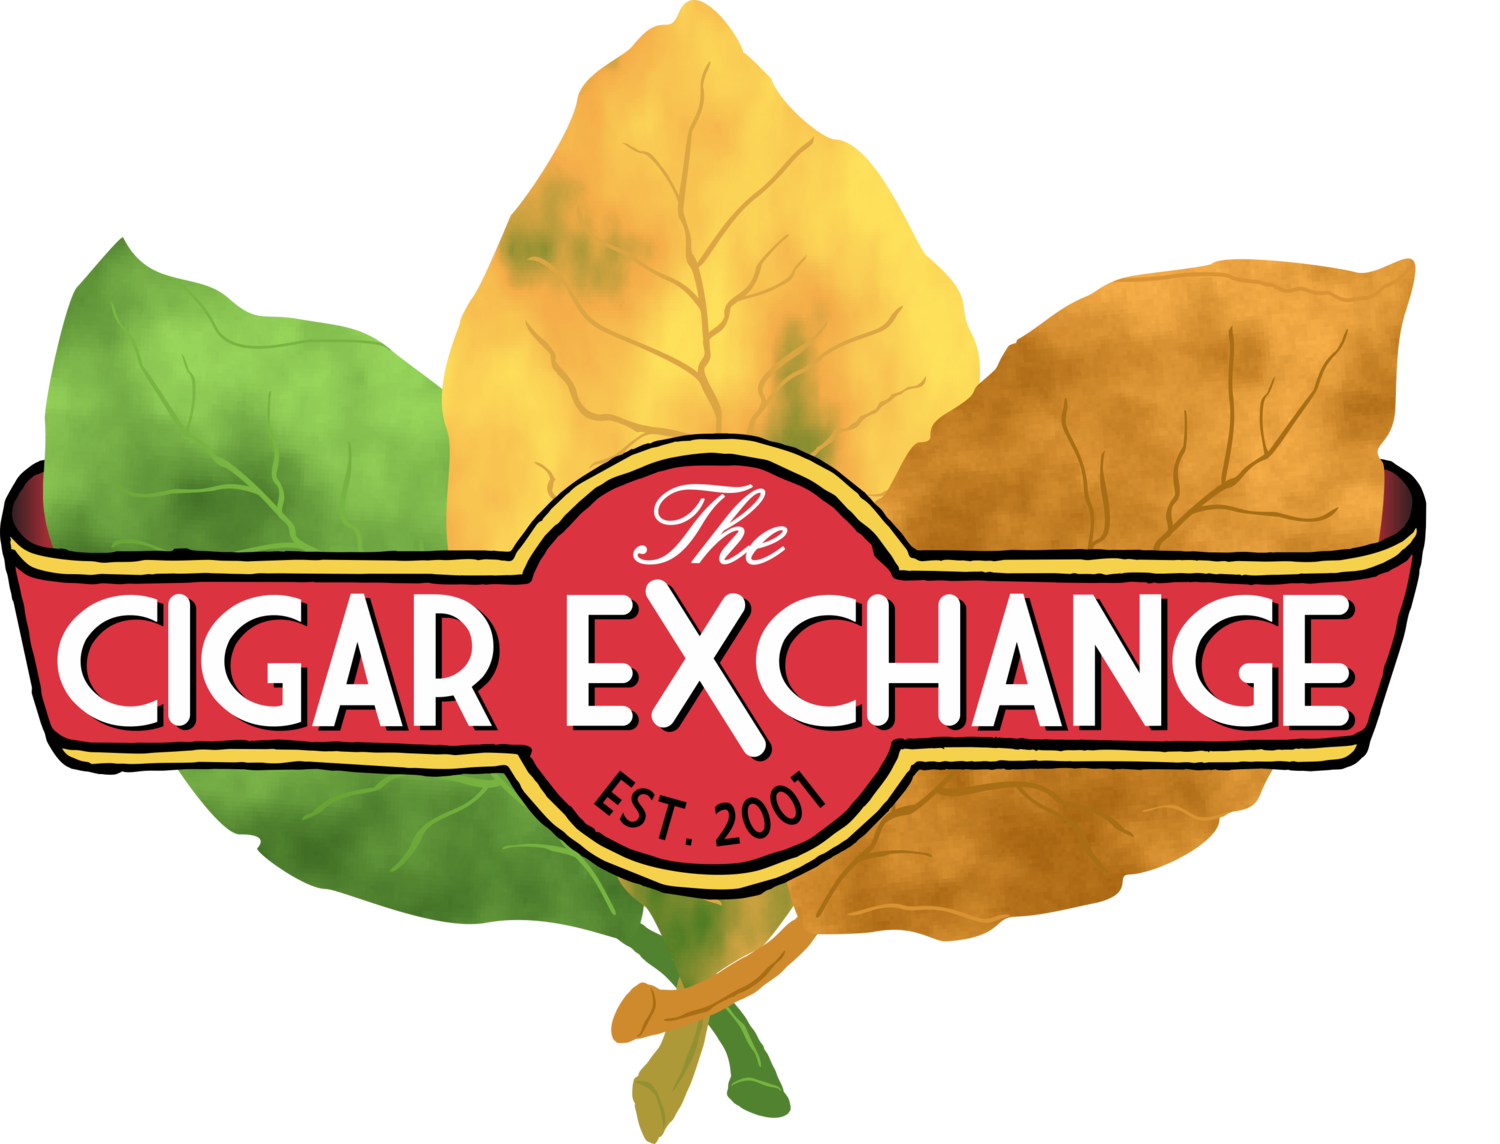 THE CIGAR Exchange